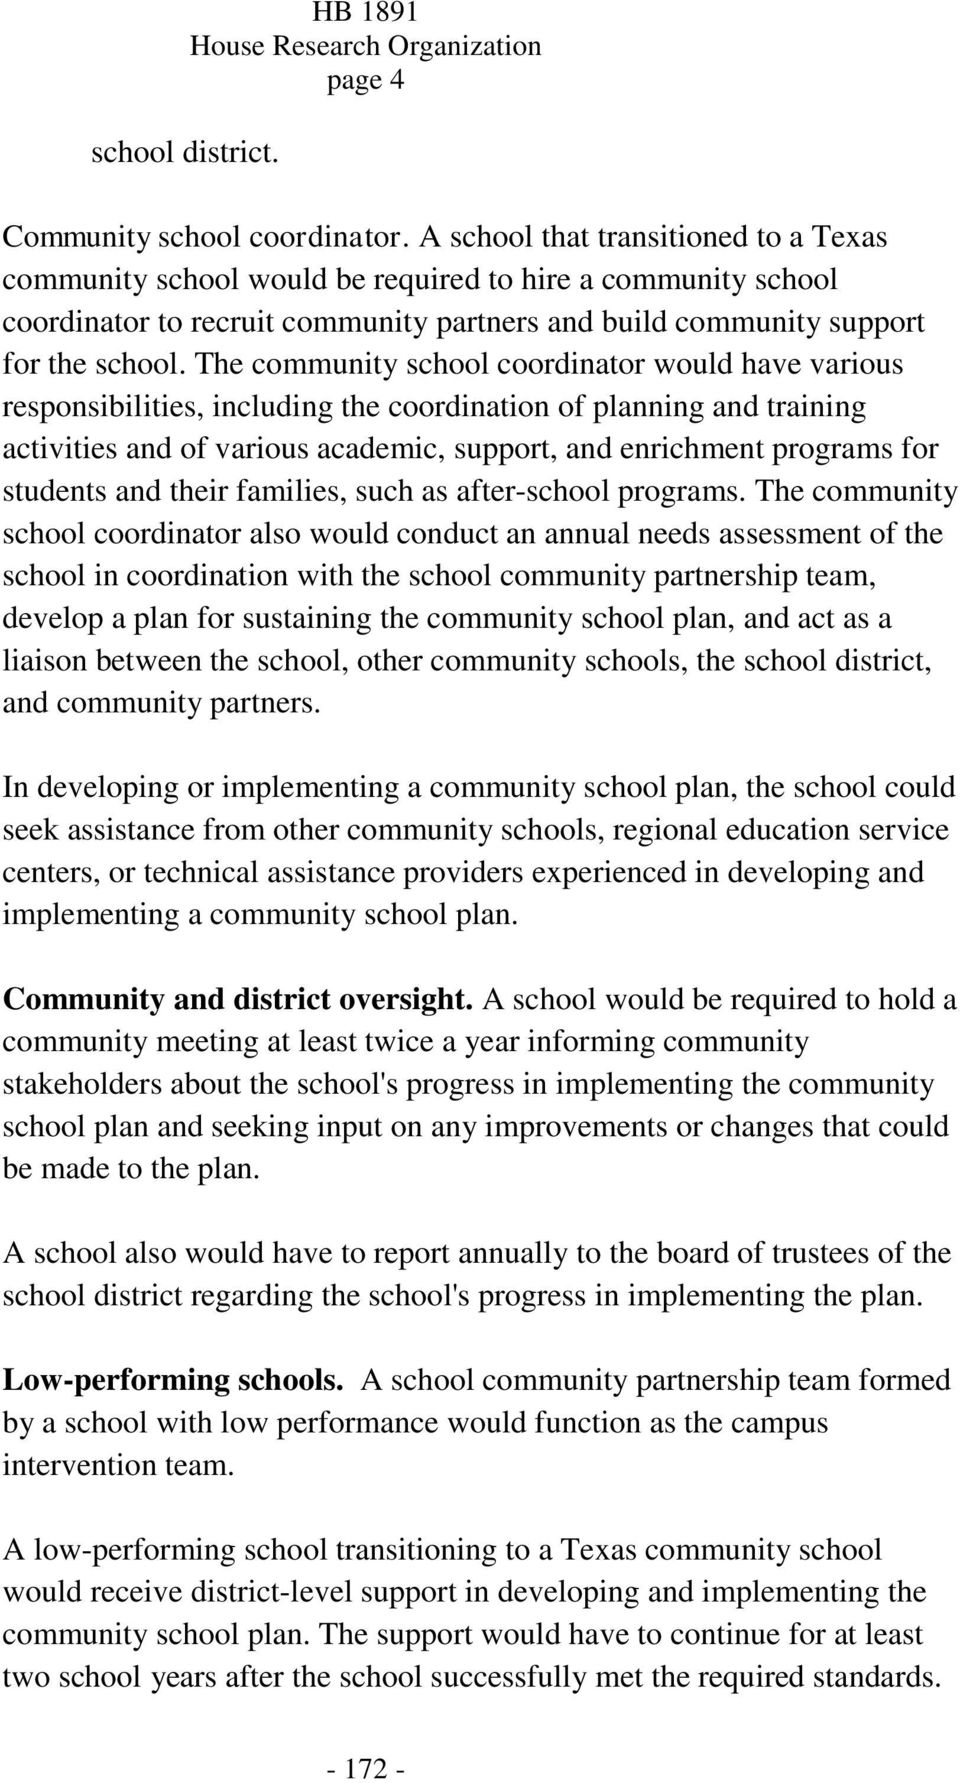 The community school coordinator would have various responsibilities, including the coordination of planning and training activities and of various academic, support, and enrichment programs for